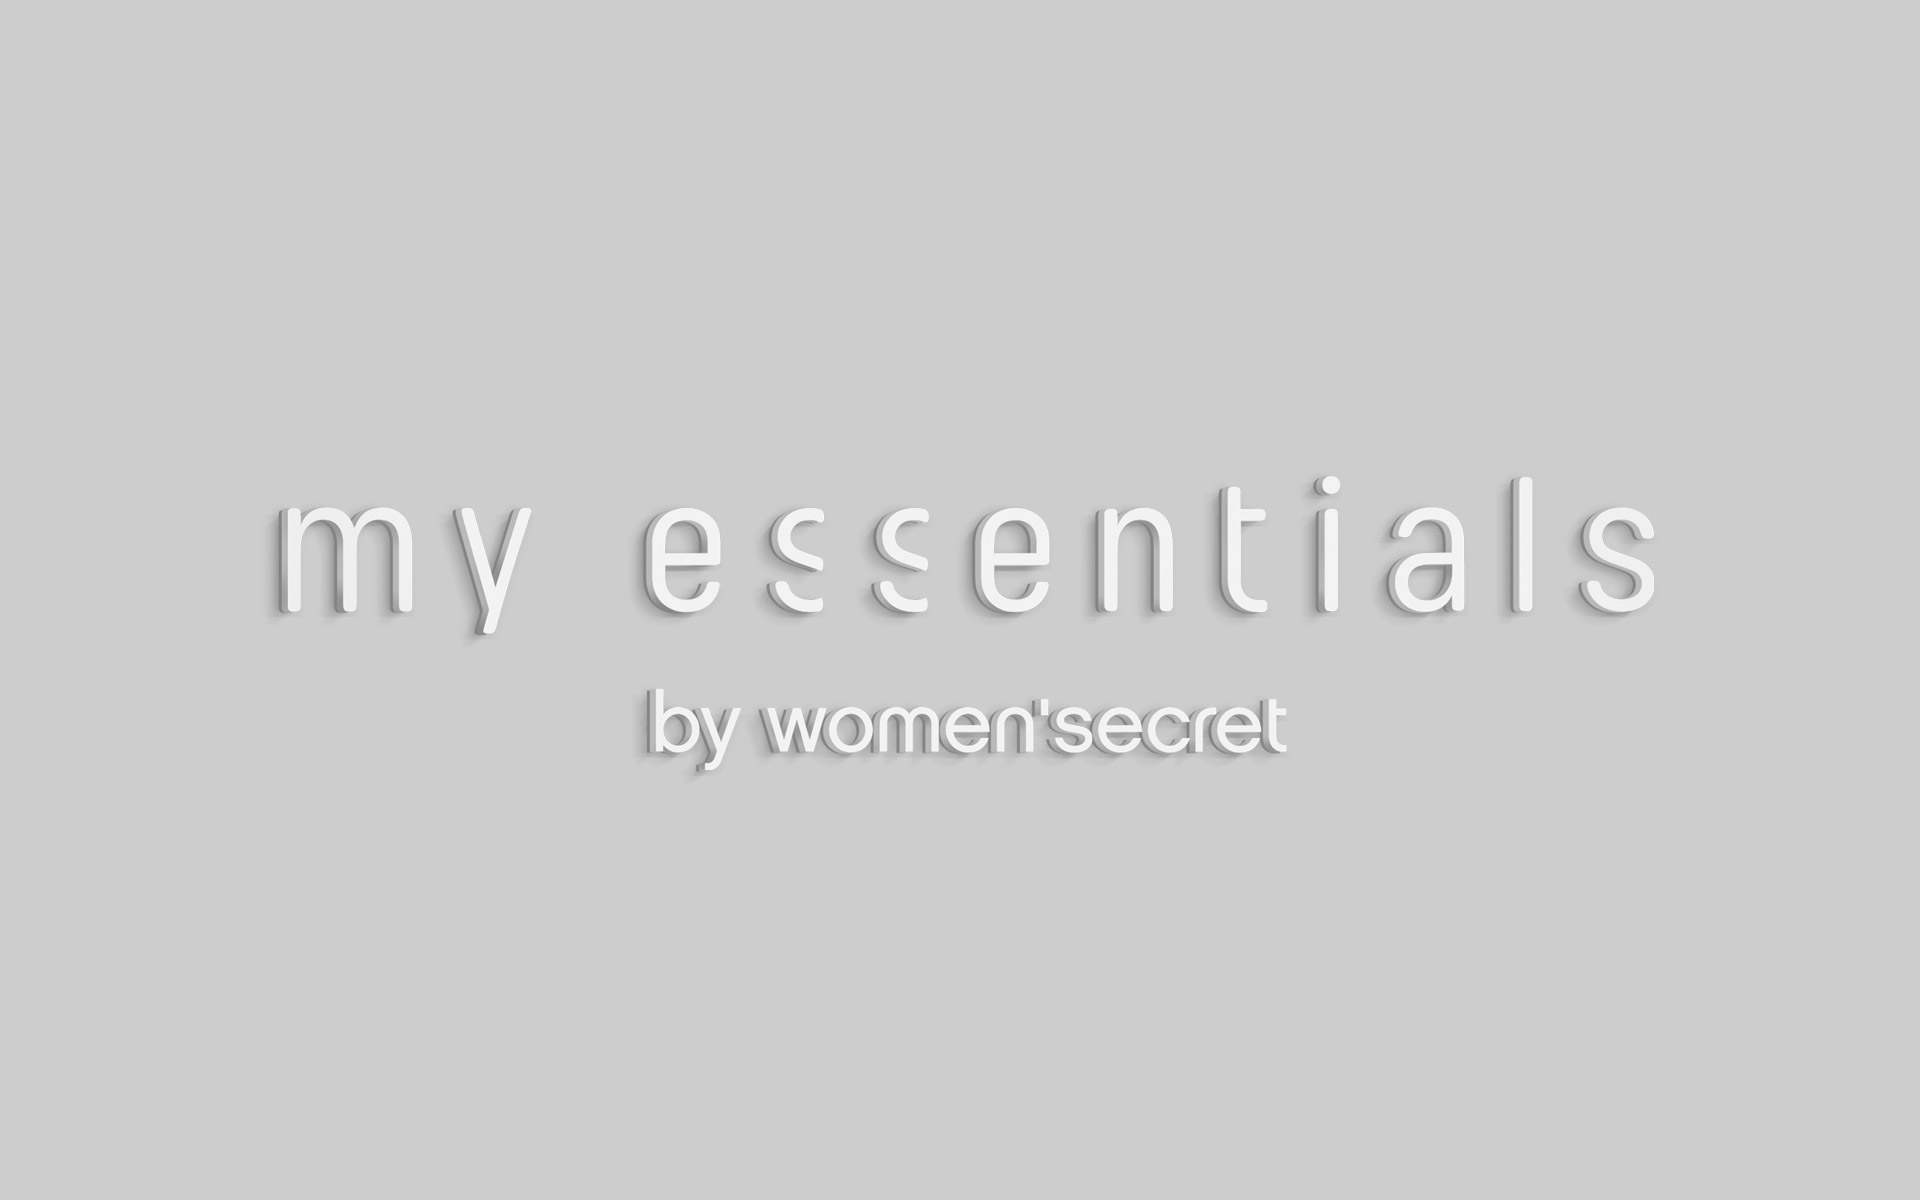 my-essentials-logo.jpg